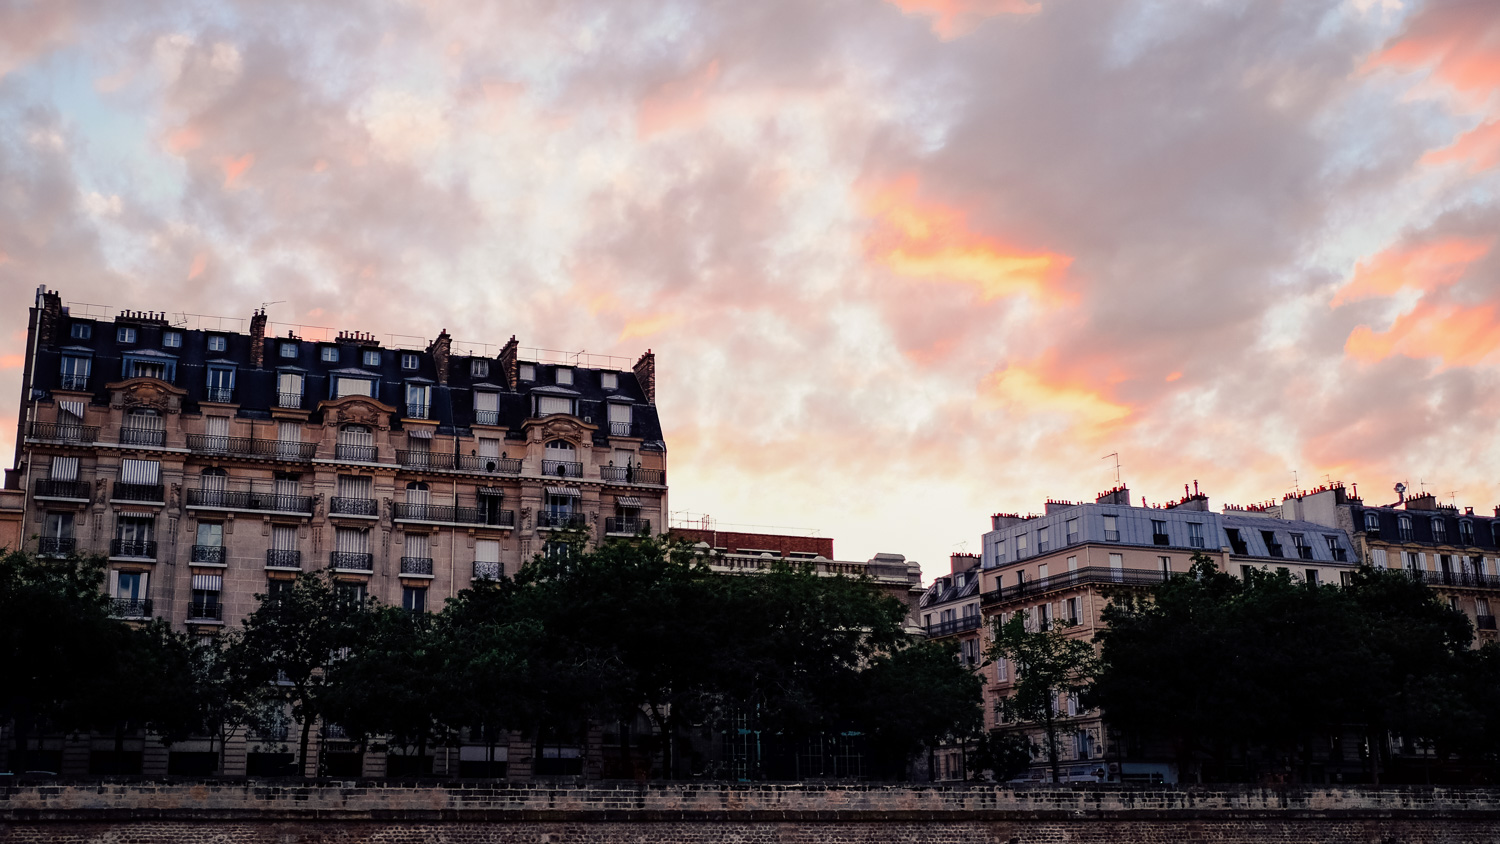 "A beautiful sunset over some buildings in Paris. Travel photography and guide by © Natasha Lequepeys for ""And Then I Met Yoko"". #paris #paristravel #photoblog #travelguide #france #parisitinerary #parishighlights #parissights #travelblog #travelphotography #landscapephotography #travelitinerary #fujifilm #paristravelguide #architecturephotography #europe #travelblogger #wanderlust #explore #travel"